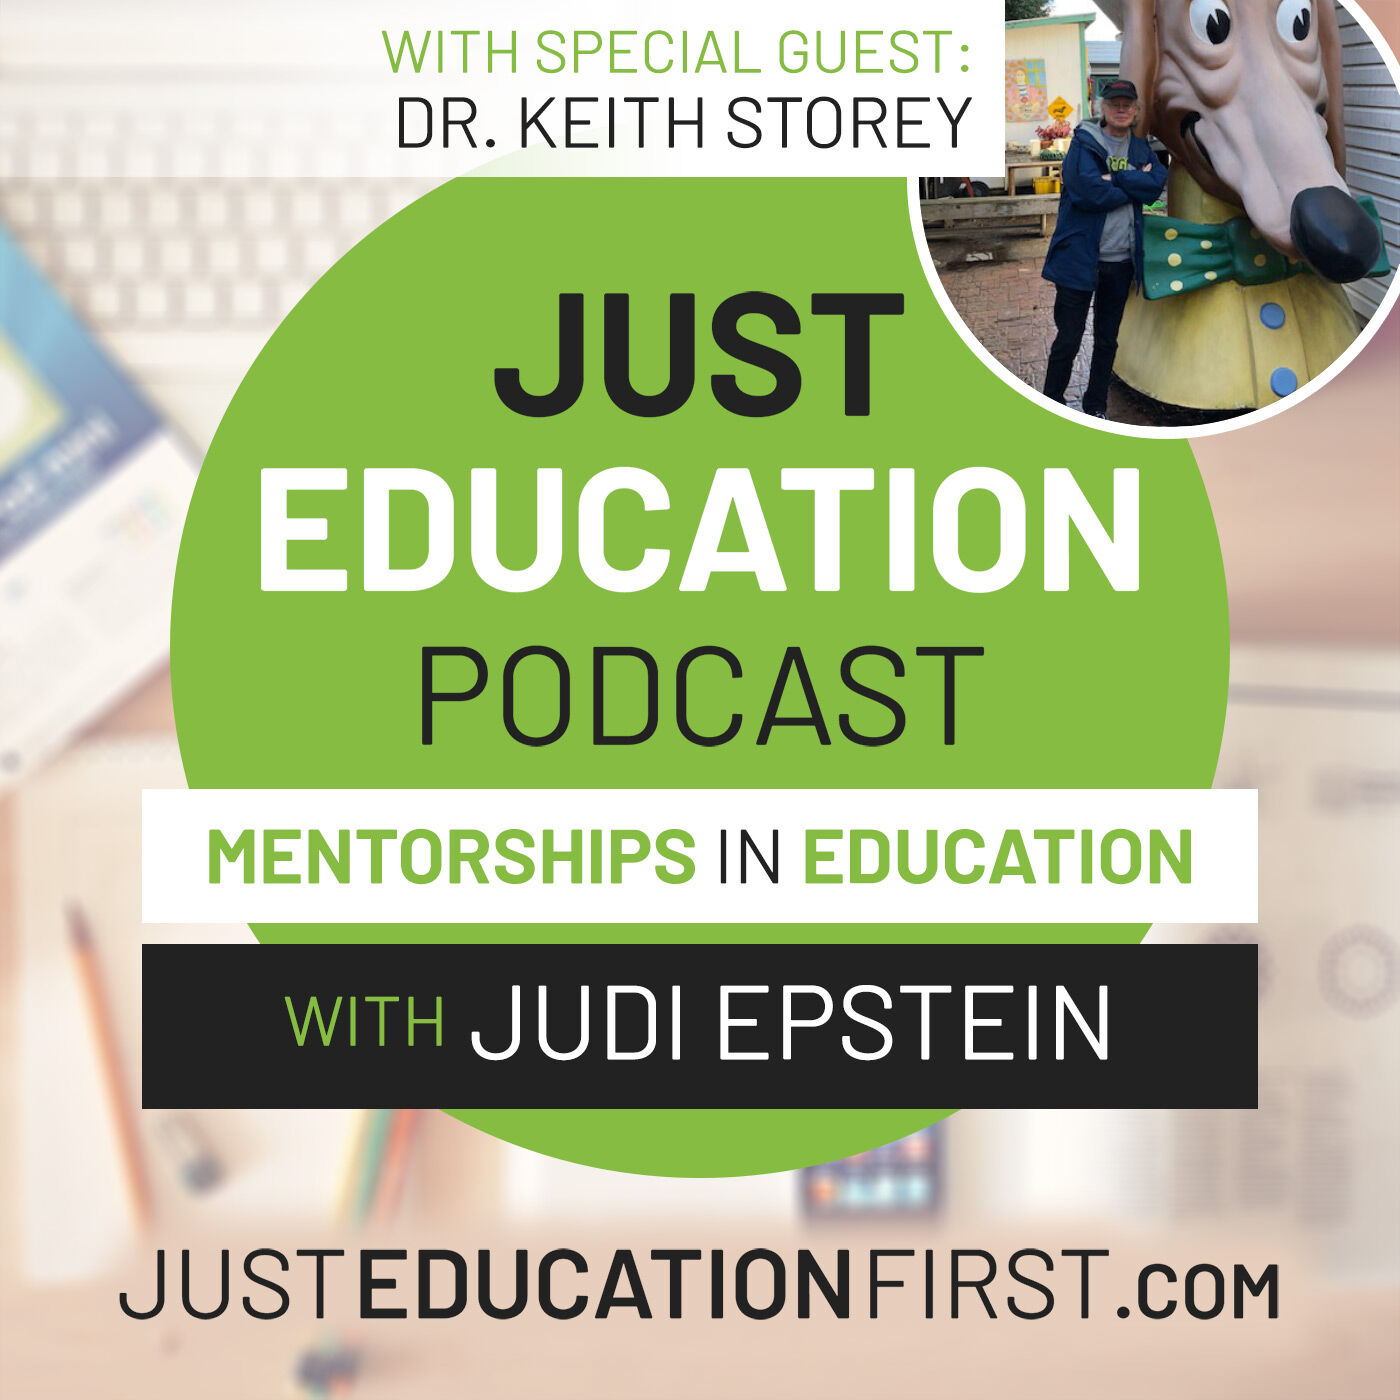 Episode 18 - Dr. Keith Storey | Different Paths to a Good Life